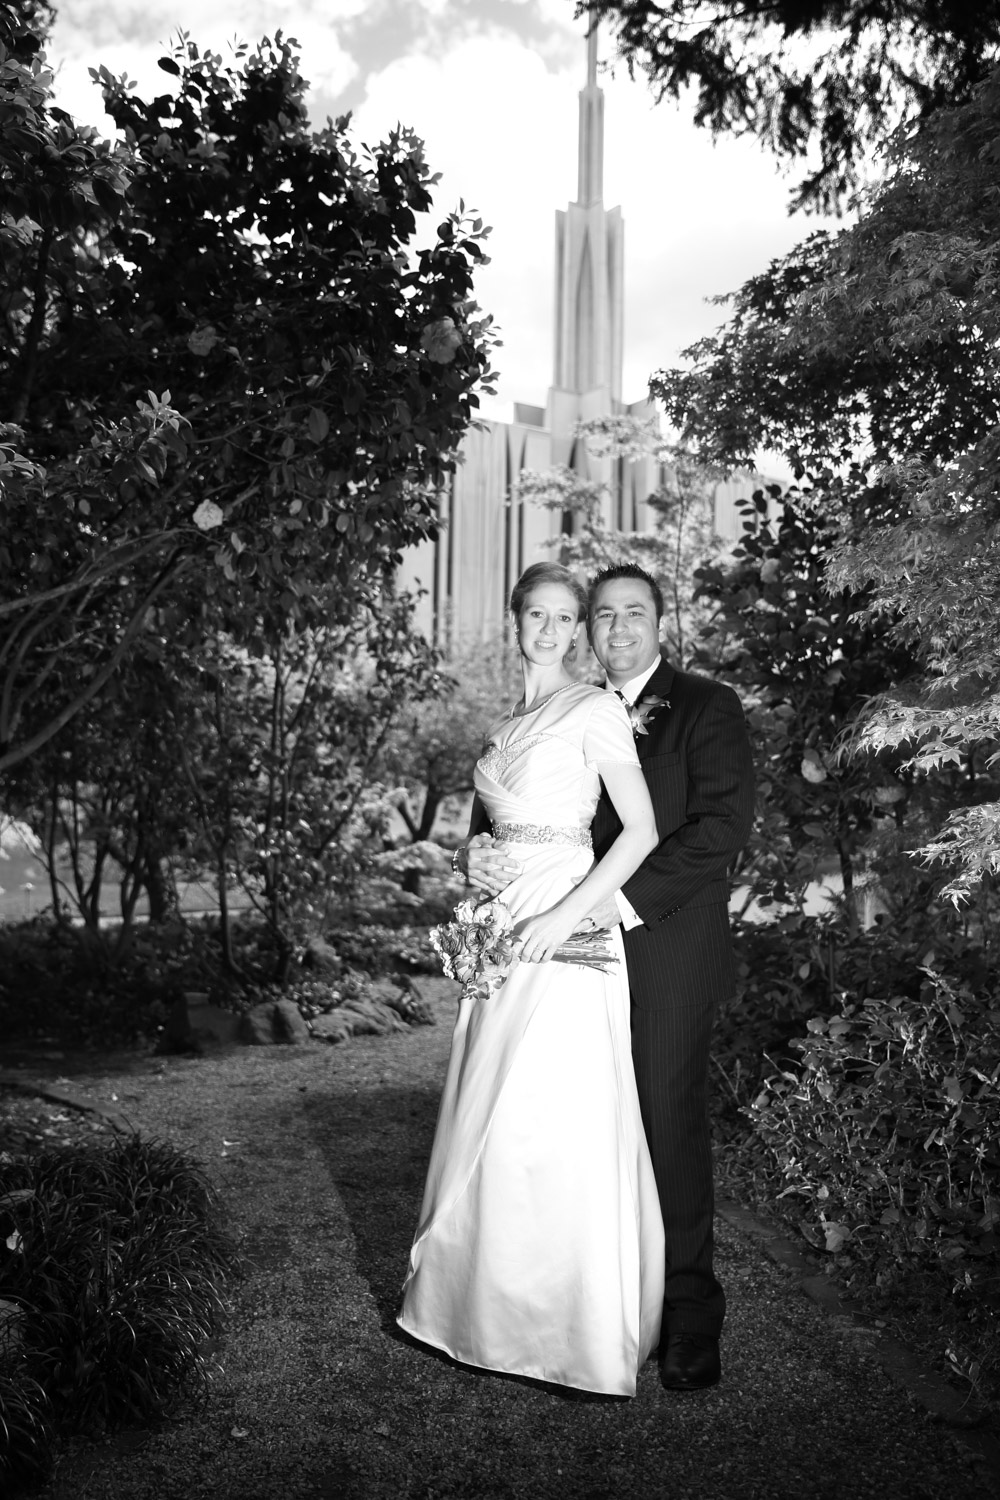 Wedding Photos LDS Temple Bellevue Washington13.jpg